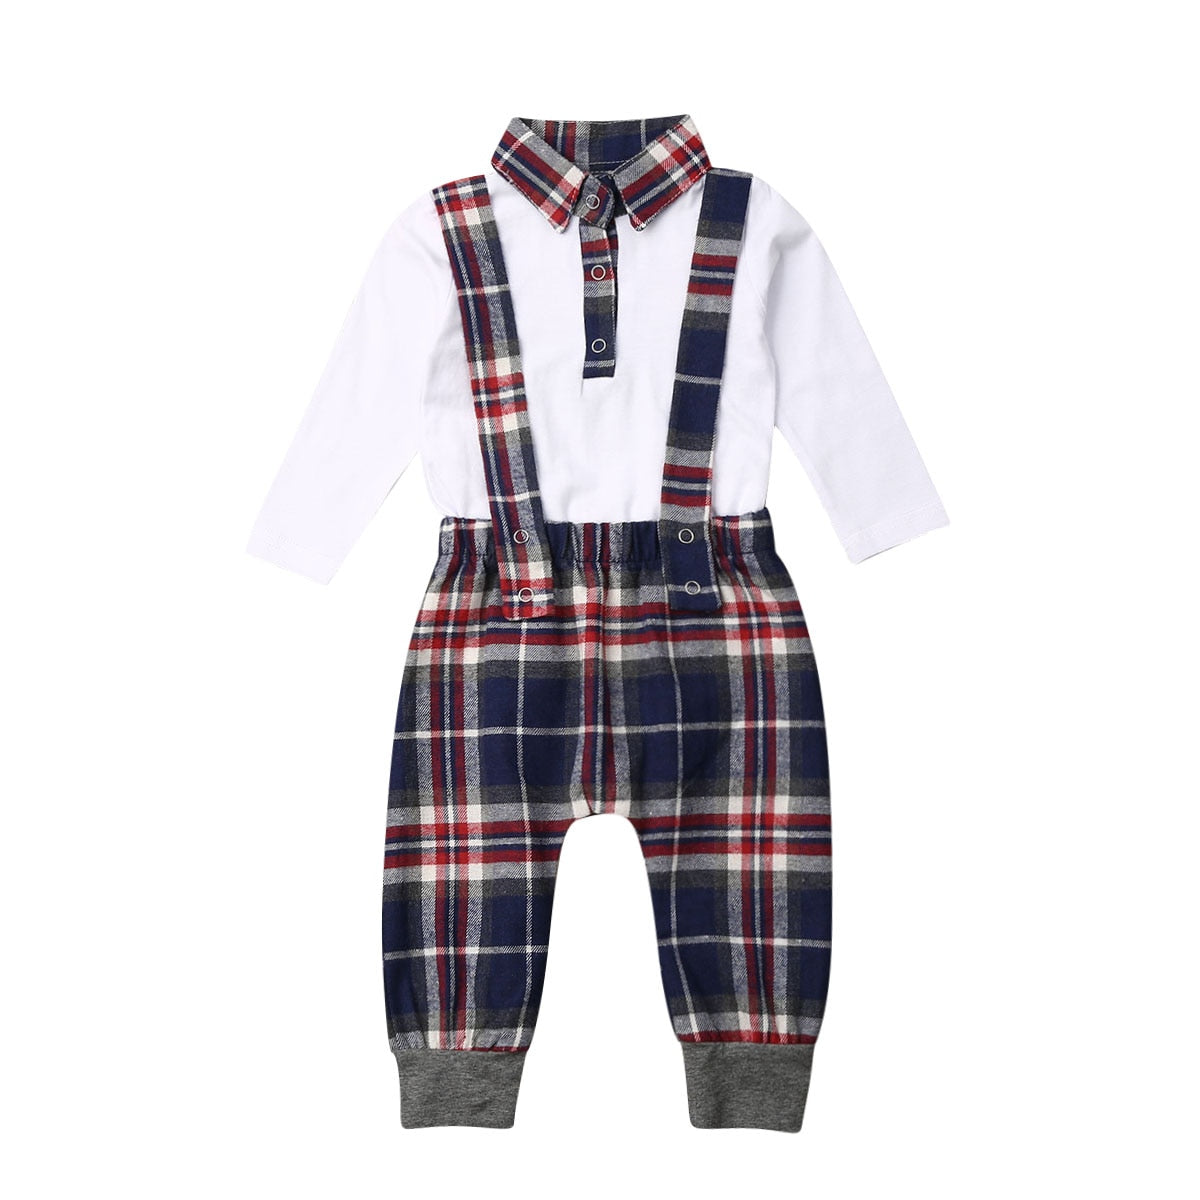 2pcs Baby Boys Romper + Bib Pant Plaid Outfit Set